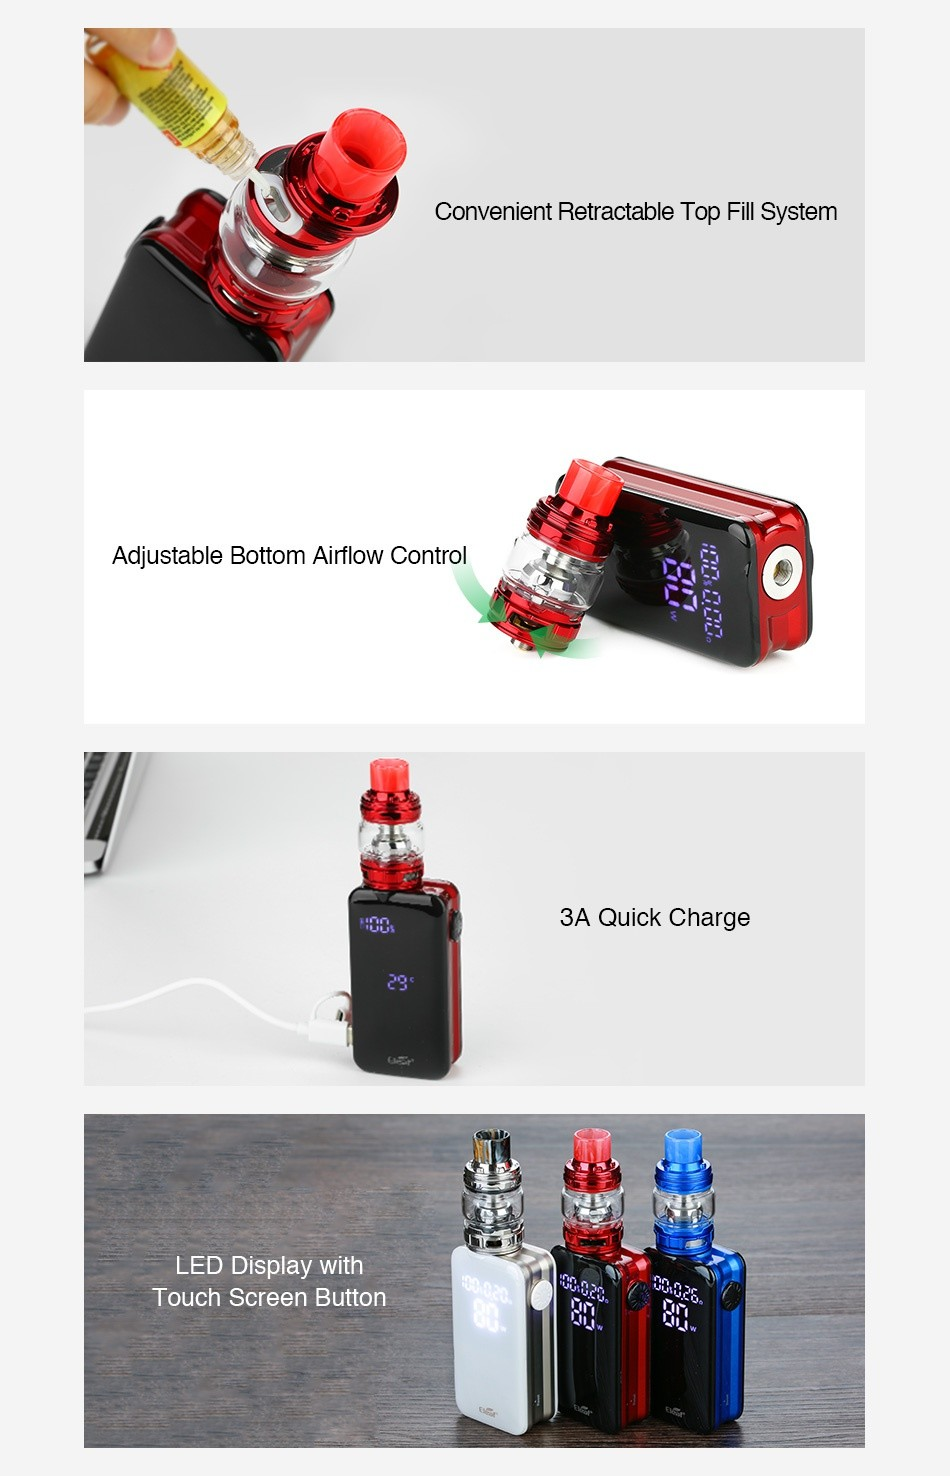 Eleaf iStick Nowos 80W VW Kit with ELLO Duro 4400mAh Convenient Retractable Top Fill System Adjustable Bottom Airflow Control 3A Quick Charge LED Display with Touch screen button